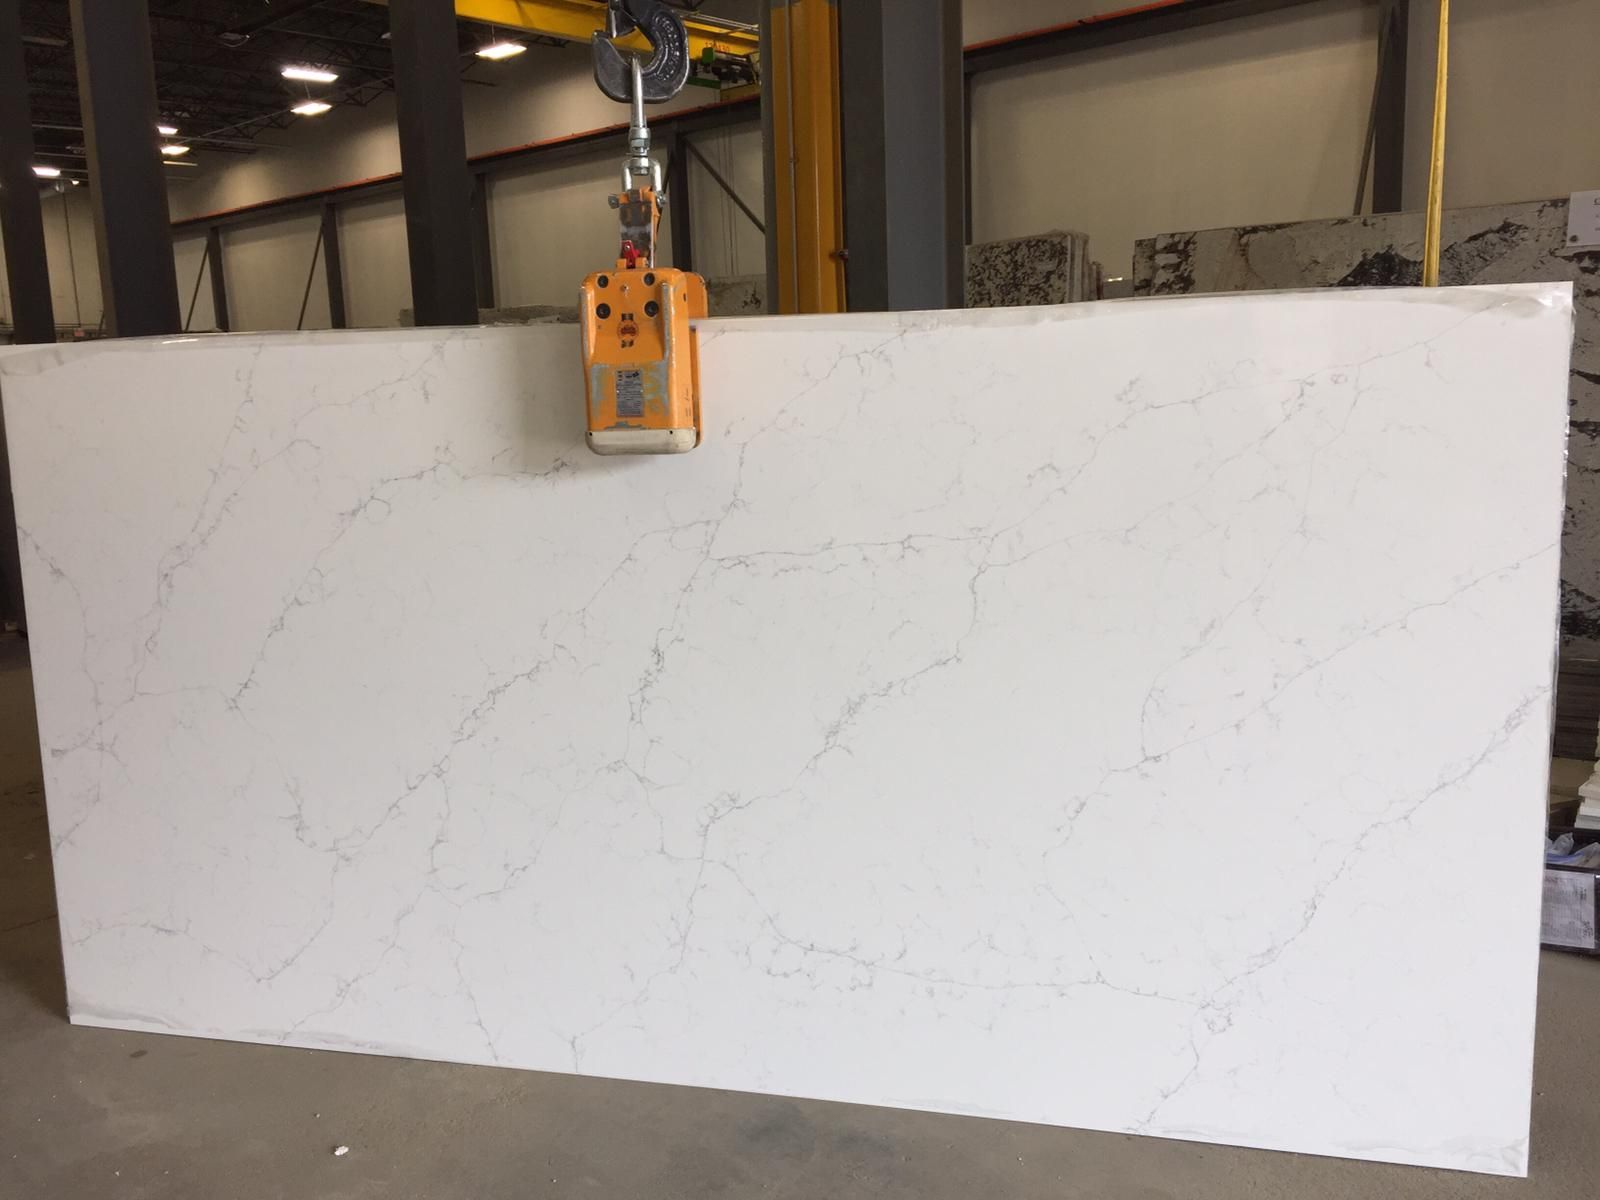 Sakura Quartz Slab 30 Mm Quartz Slab Quartz Countertops Decor